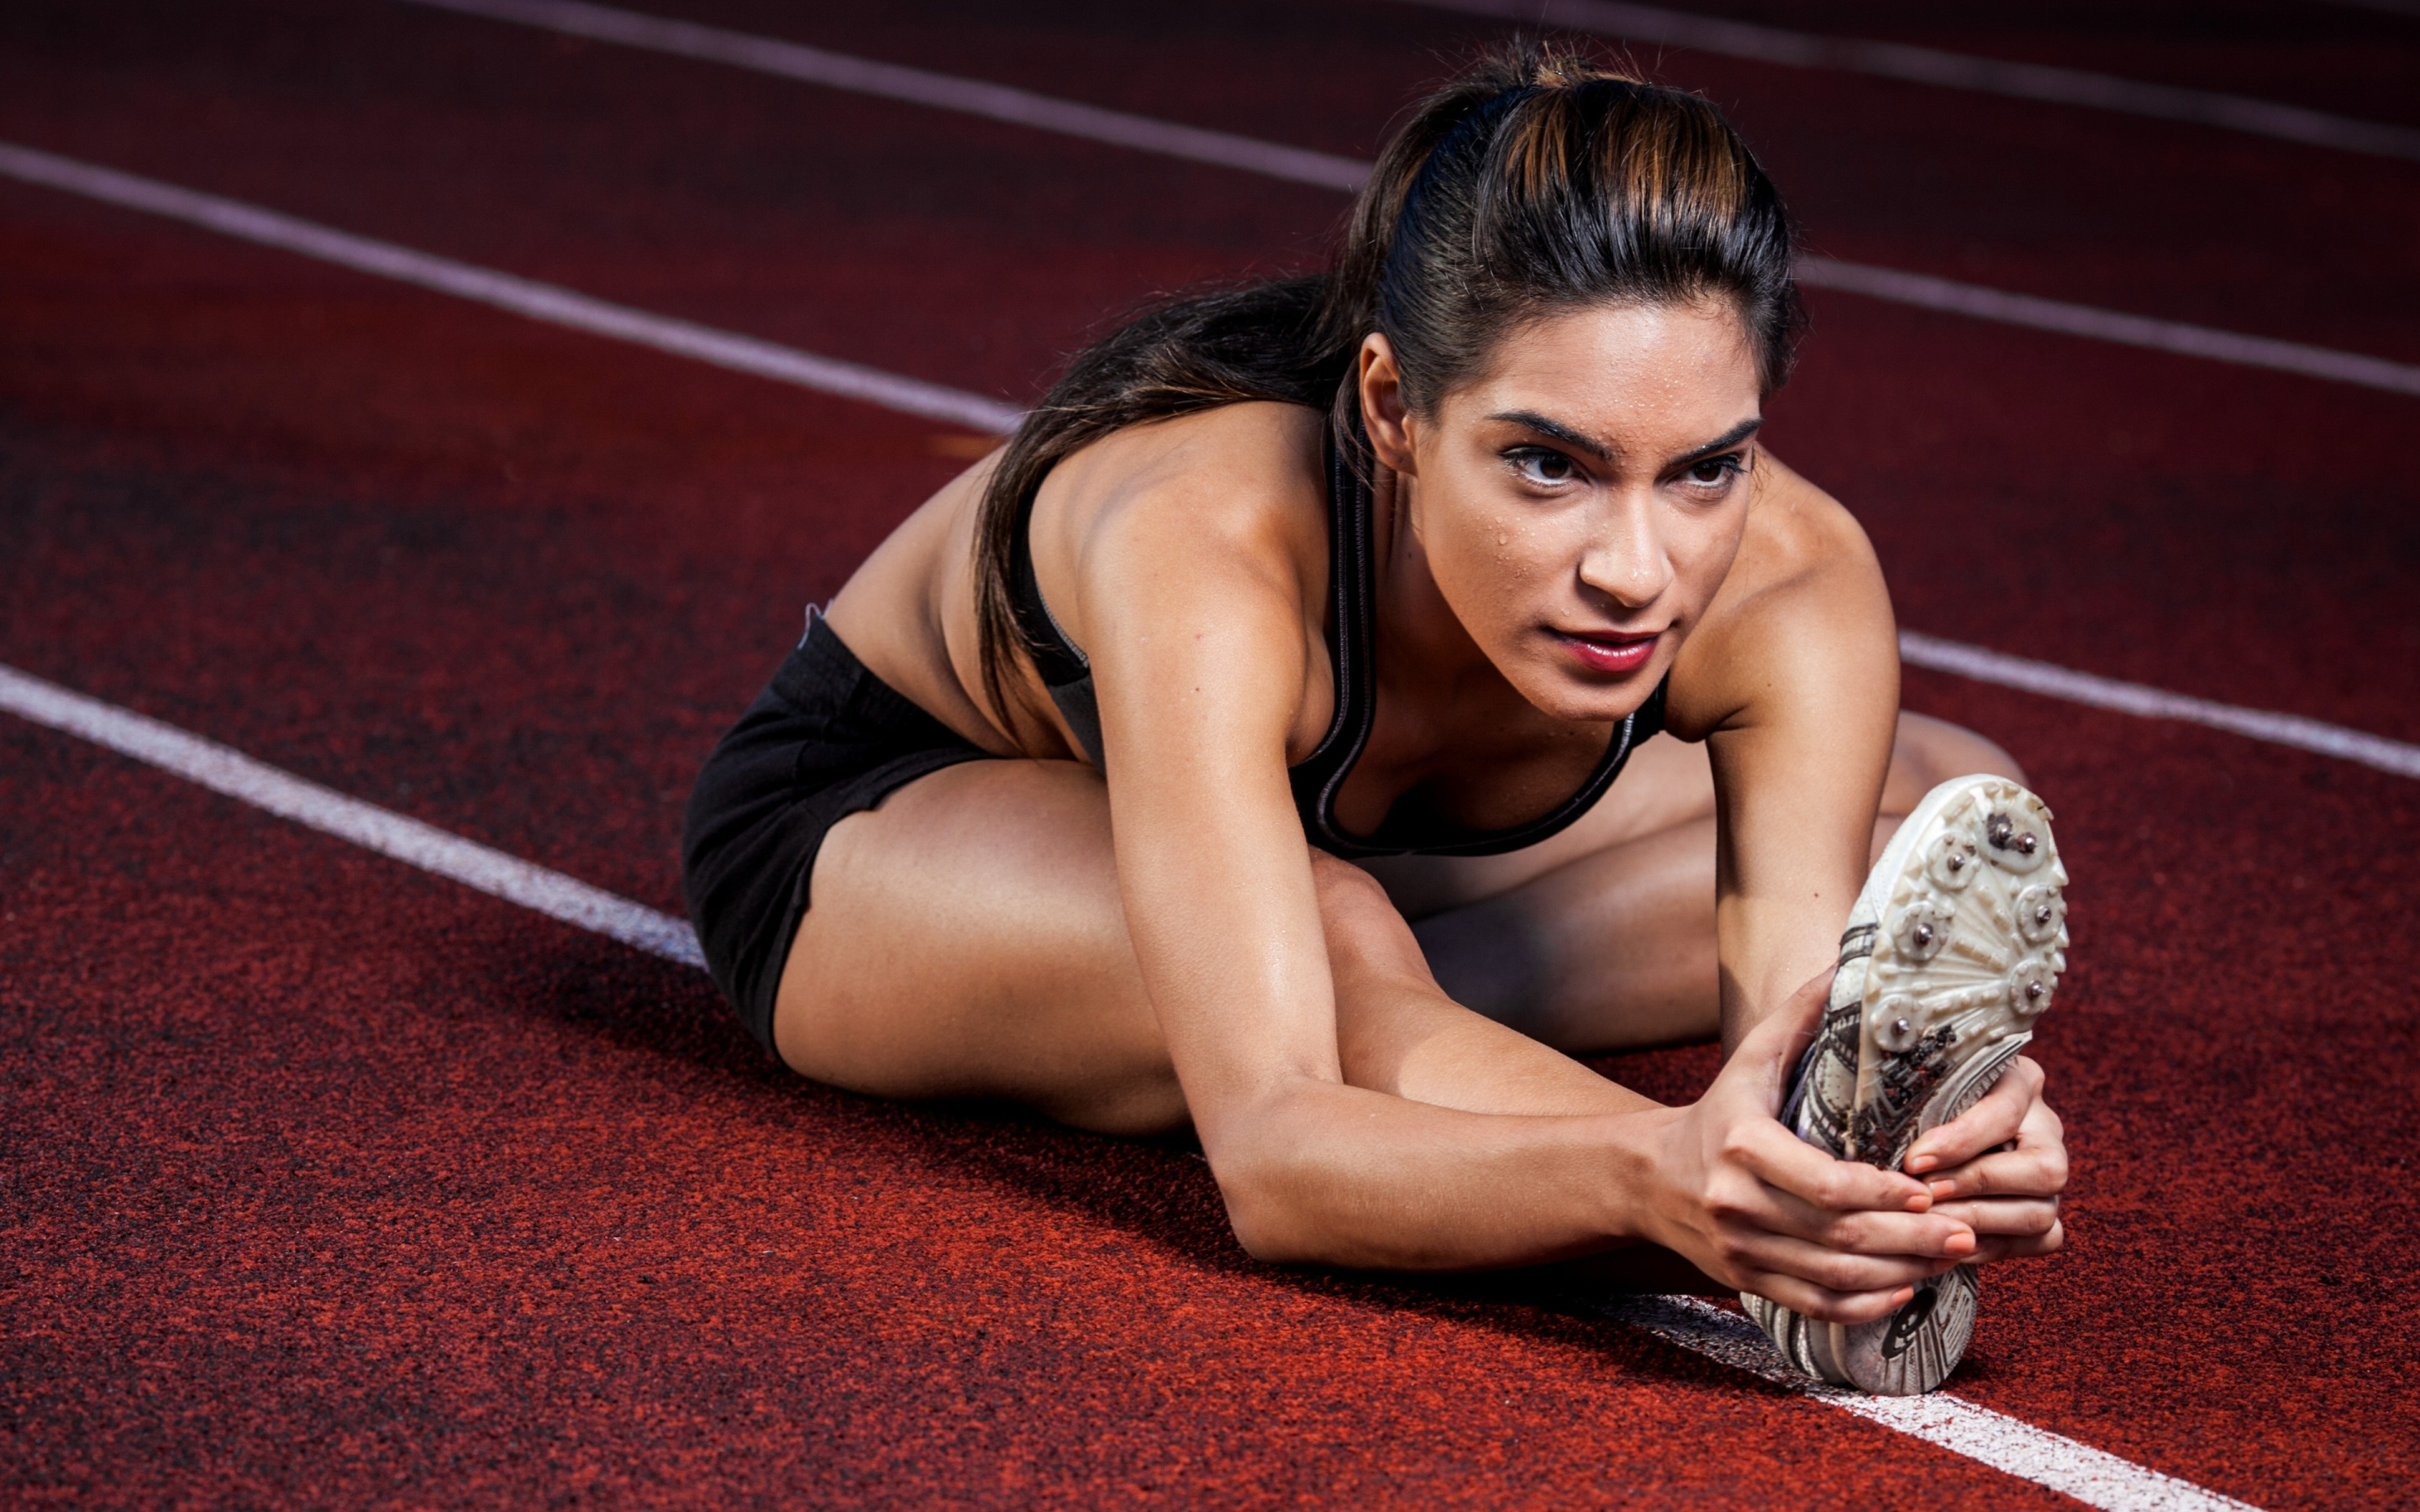 Athlete, Fitness, Stretching, HD, Sports